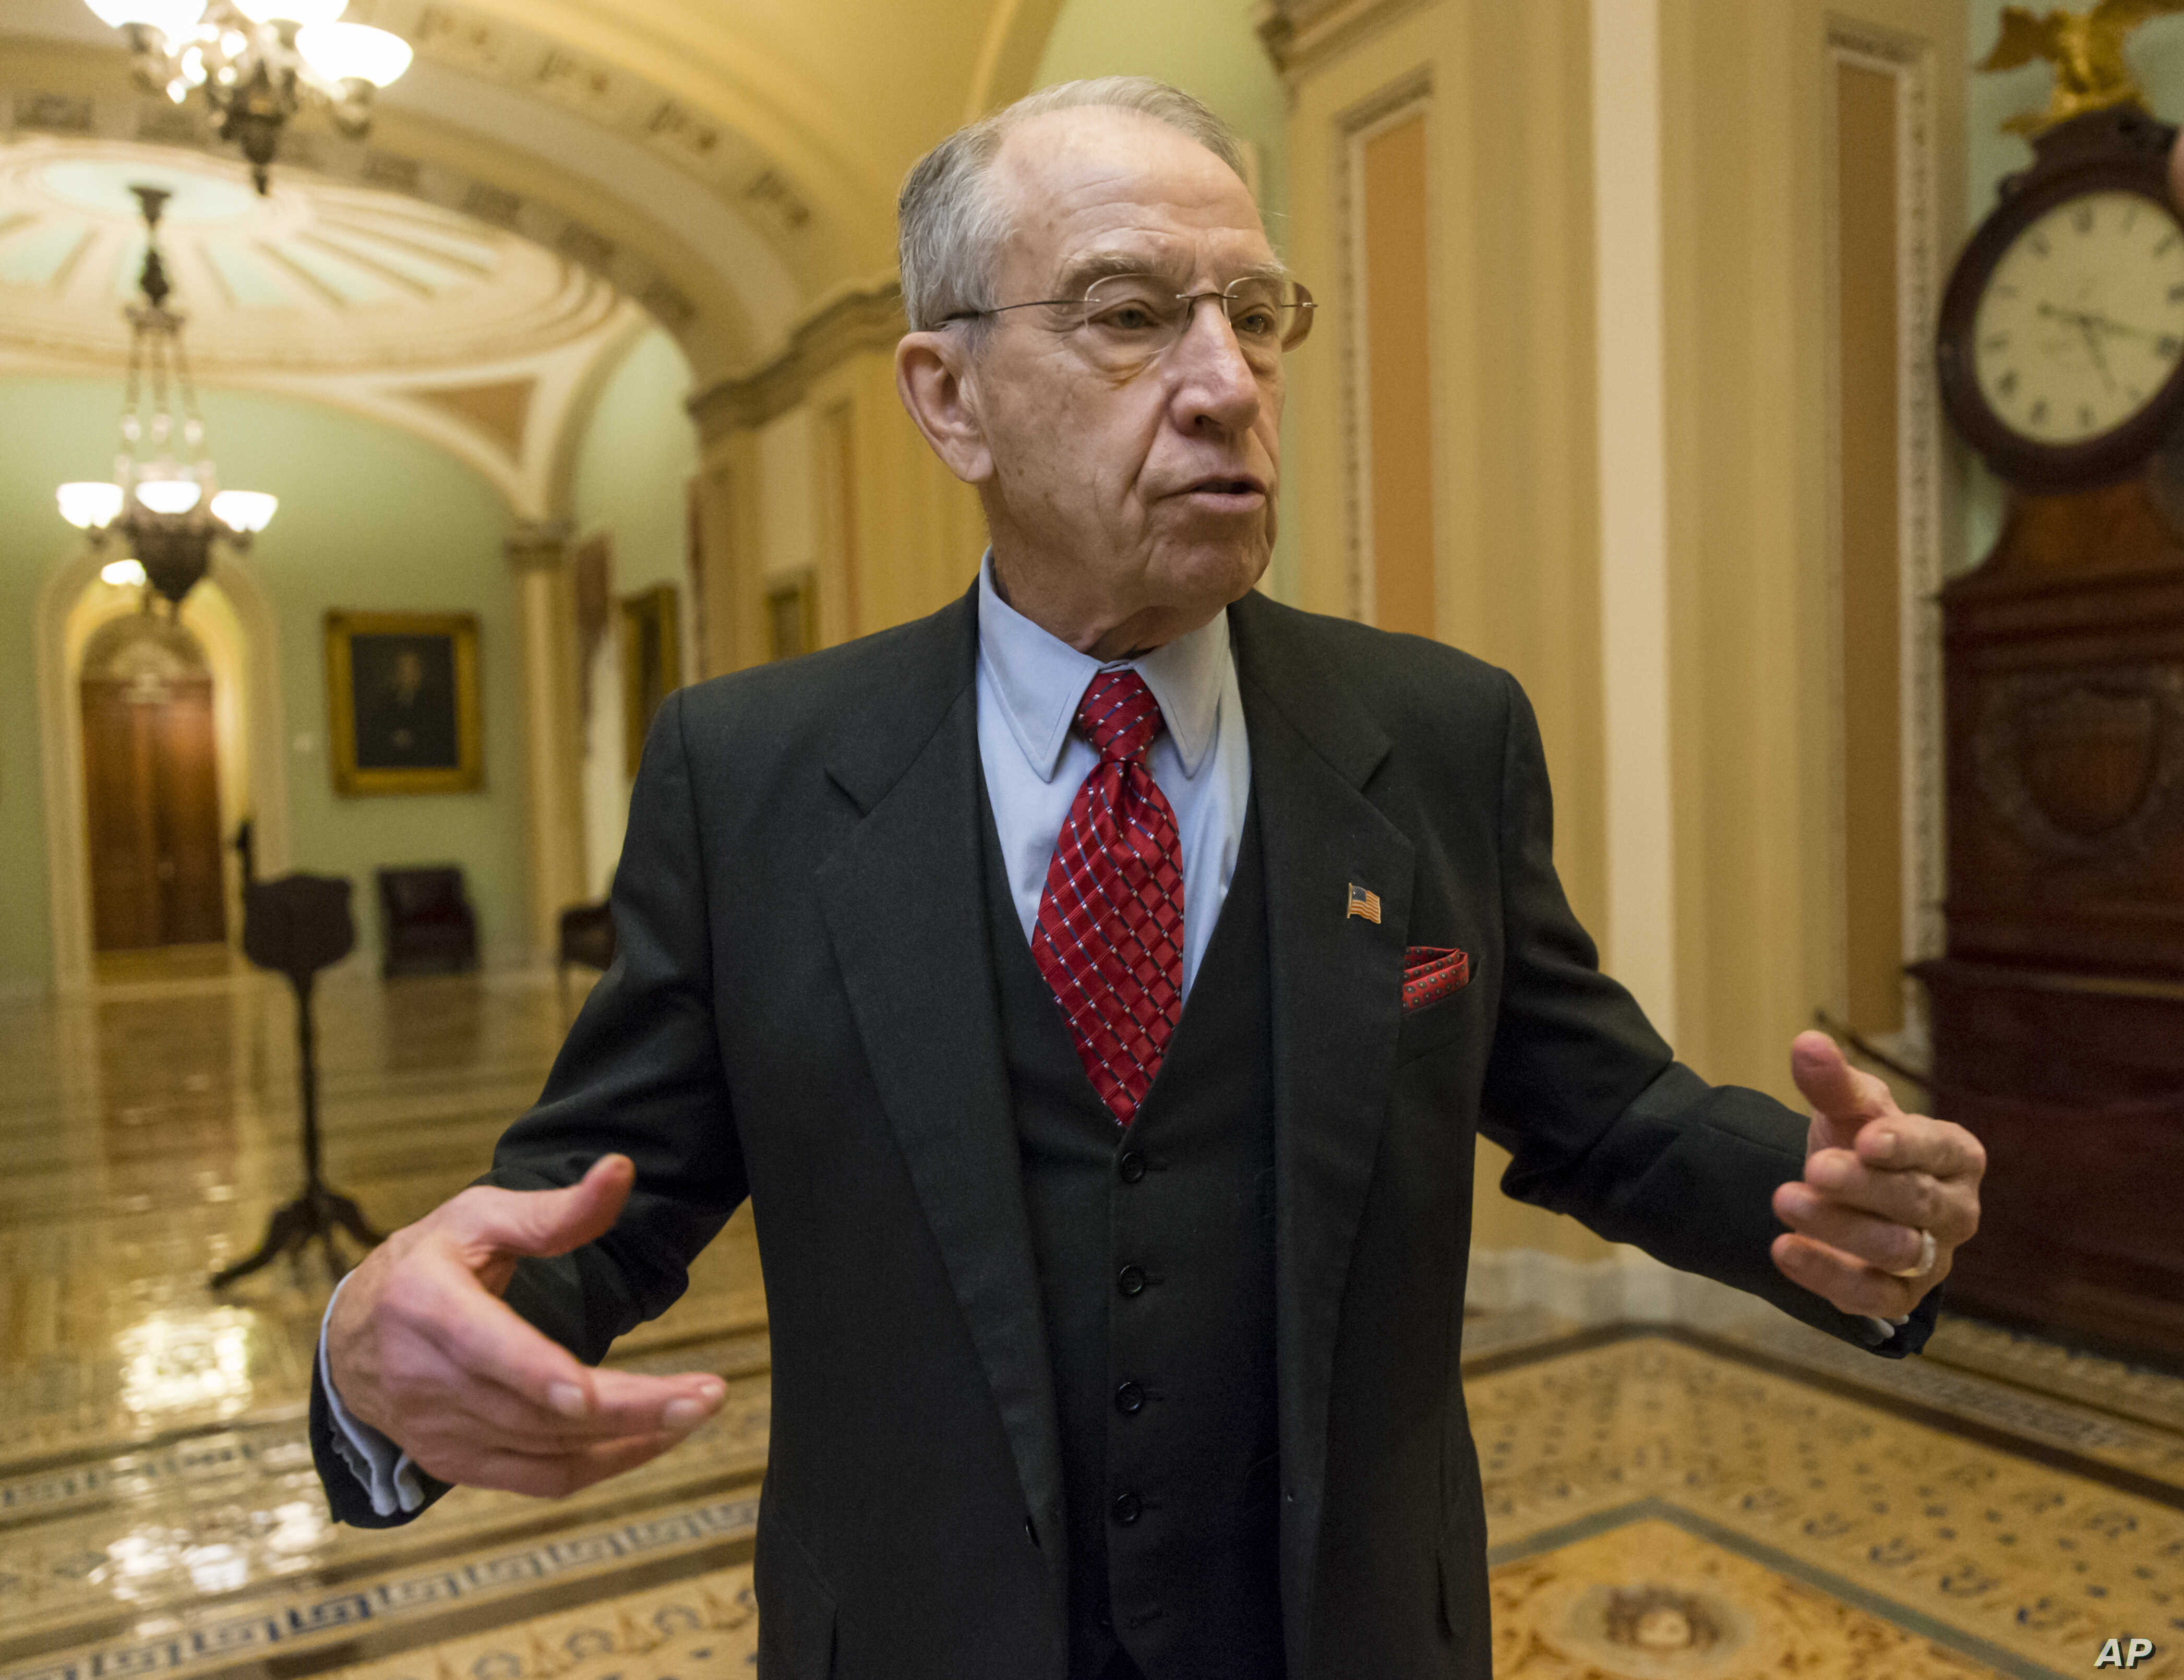 Sen. Chuck Grassley, R-Iowa, chairman of the Senate Judiciary Committee, is leaving open the possibility of holding a hearing for President Barack Obama's choice to fill a Supreme Court vacancy, amid signs of uncertainty about how Republicans would t...